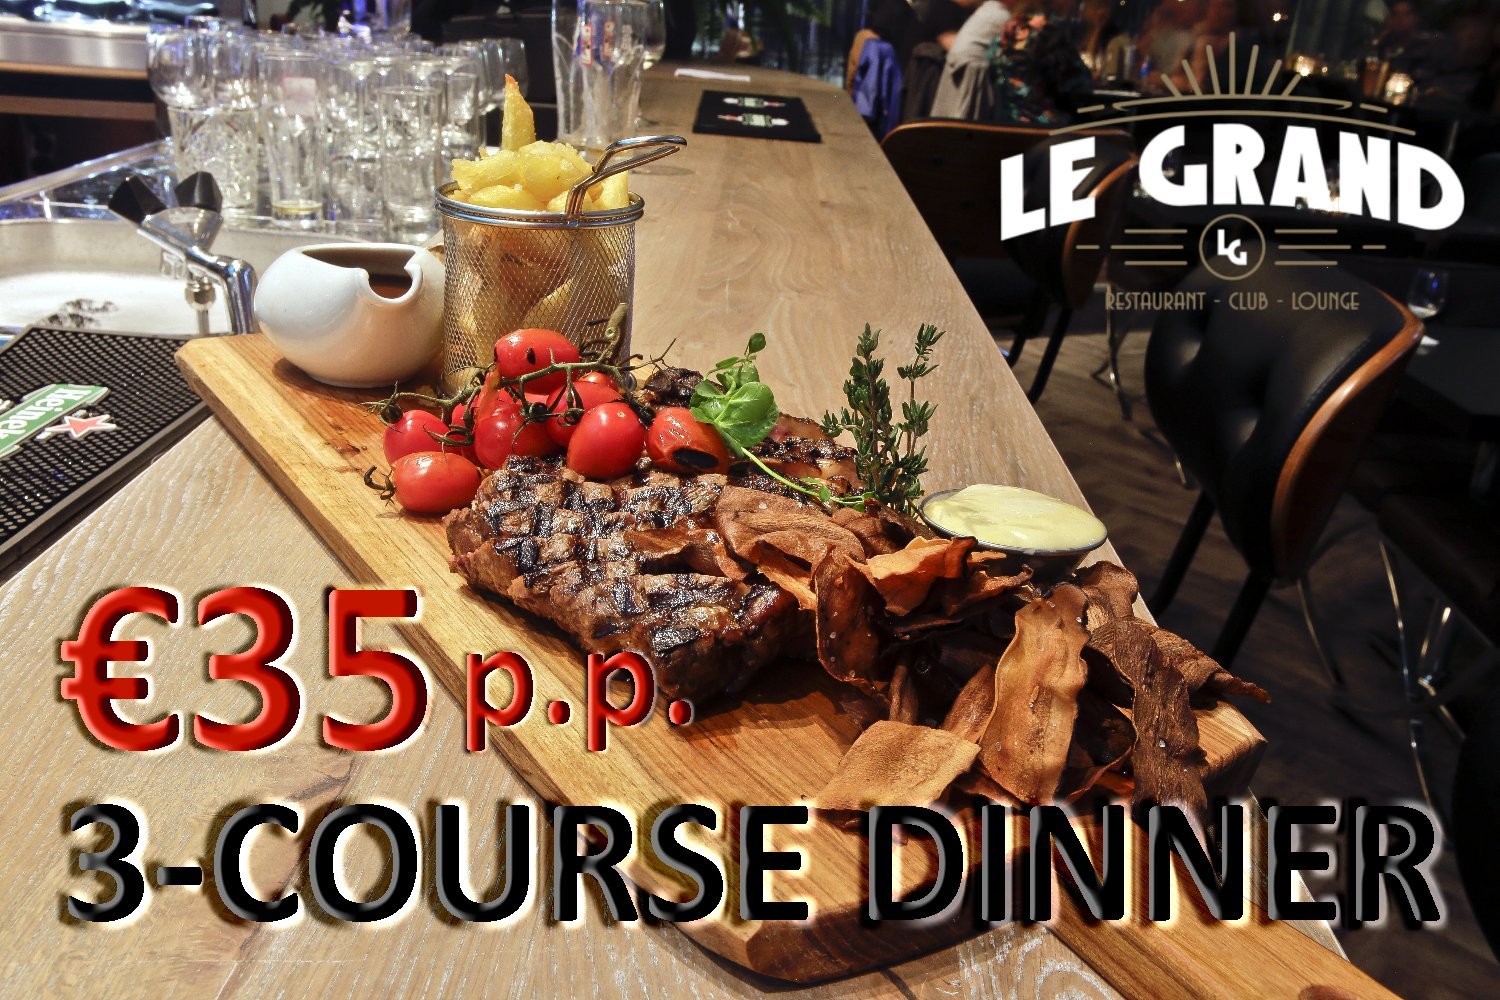 3-Course Dinner Le Grand